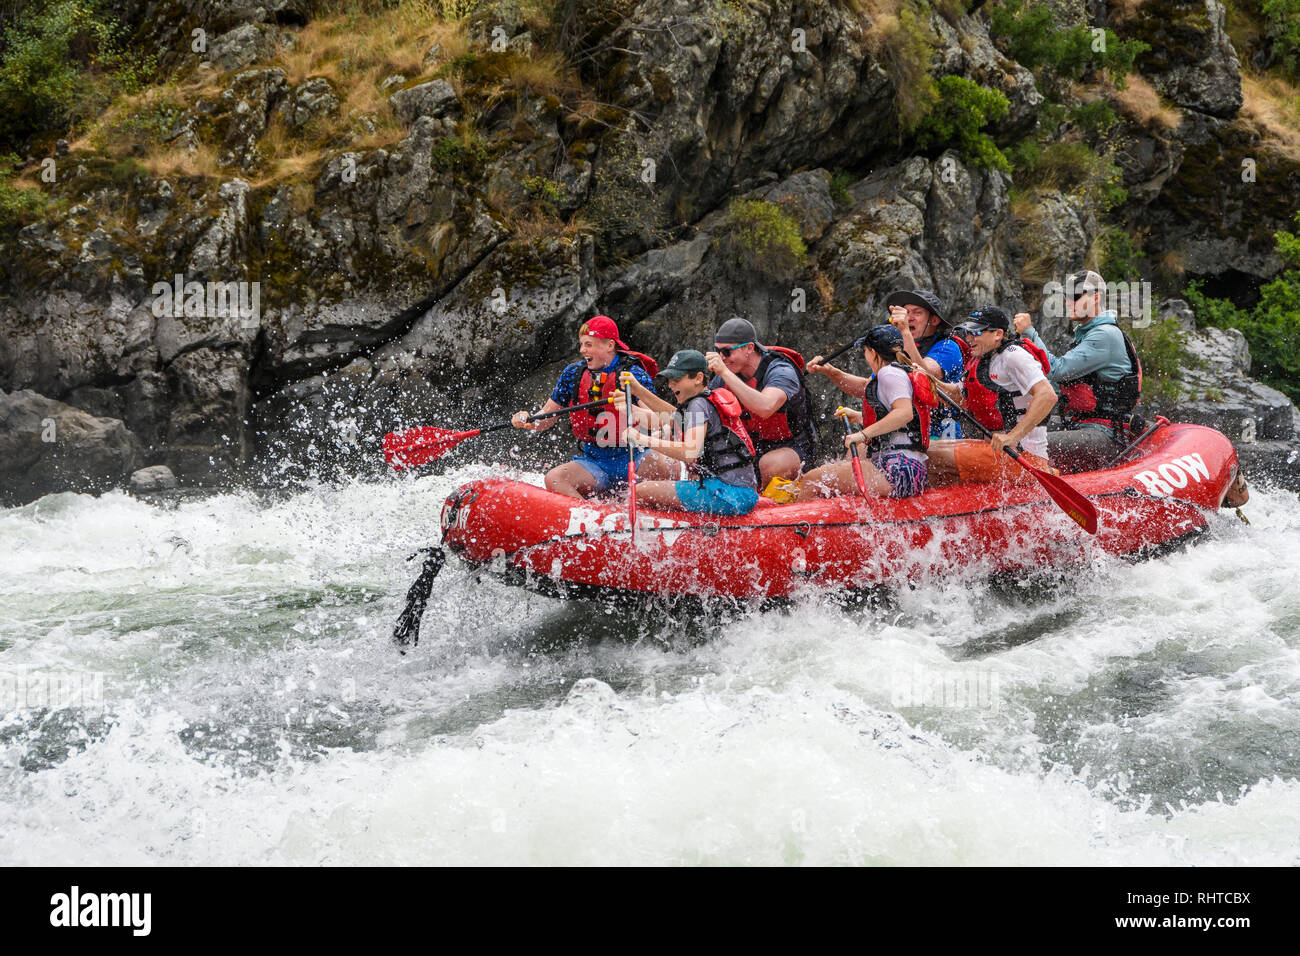 Whitewater rafting on the Snake River in Hells Canyon with ROW Adventures. - Stock Image